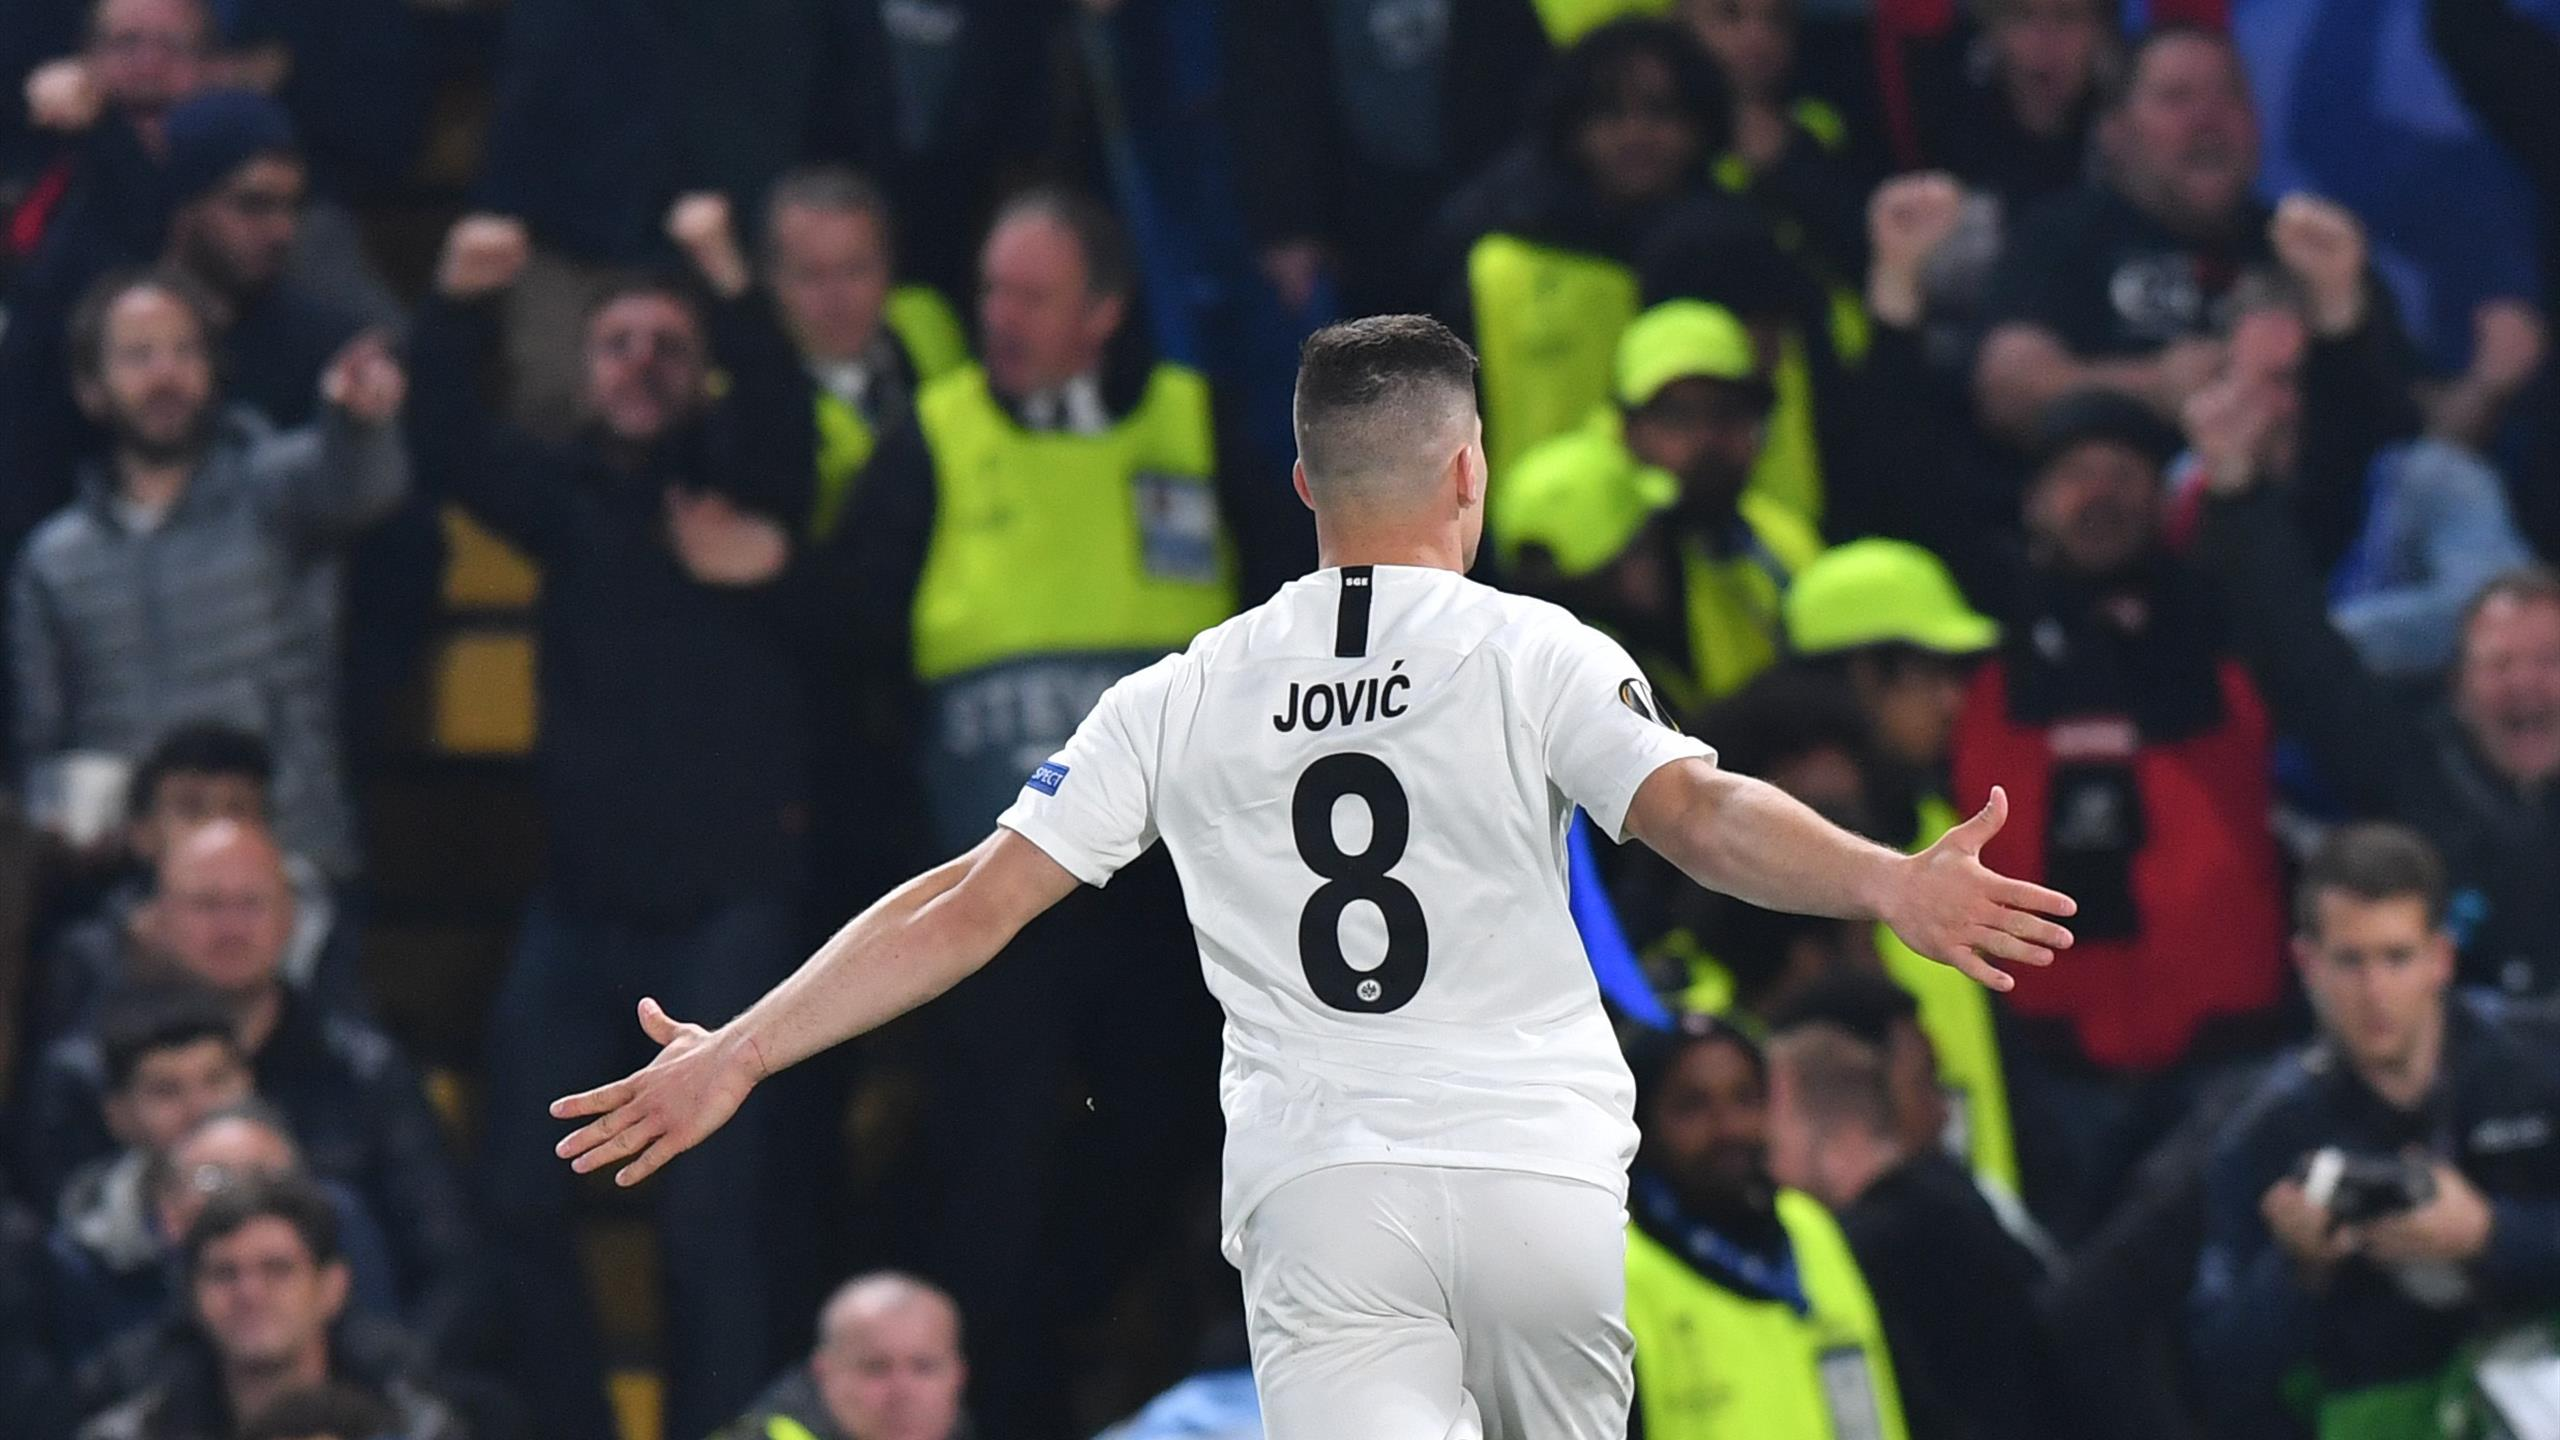 Eintr. Frankfurt's Serbian forward Luka Jovic celebrates scoring the team's first goal during the UEFA Europa League semi-final second leg football match between Chelsea and Eintracht Frankfurt at Stamford Bridge in London on May 9, 2019.